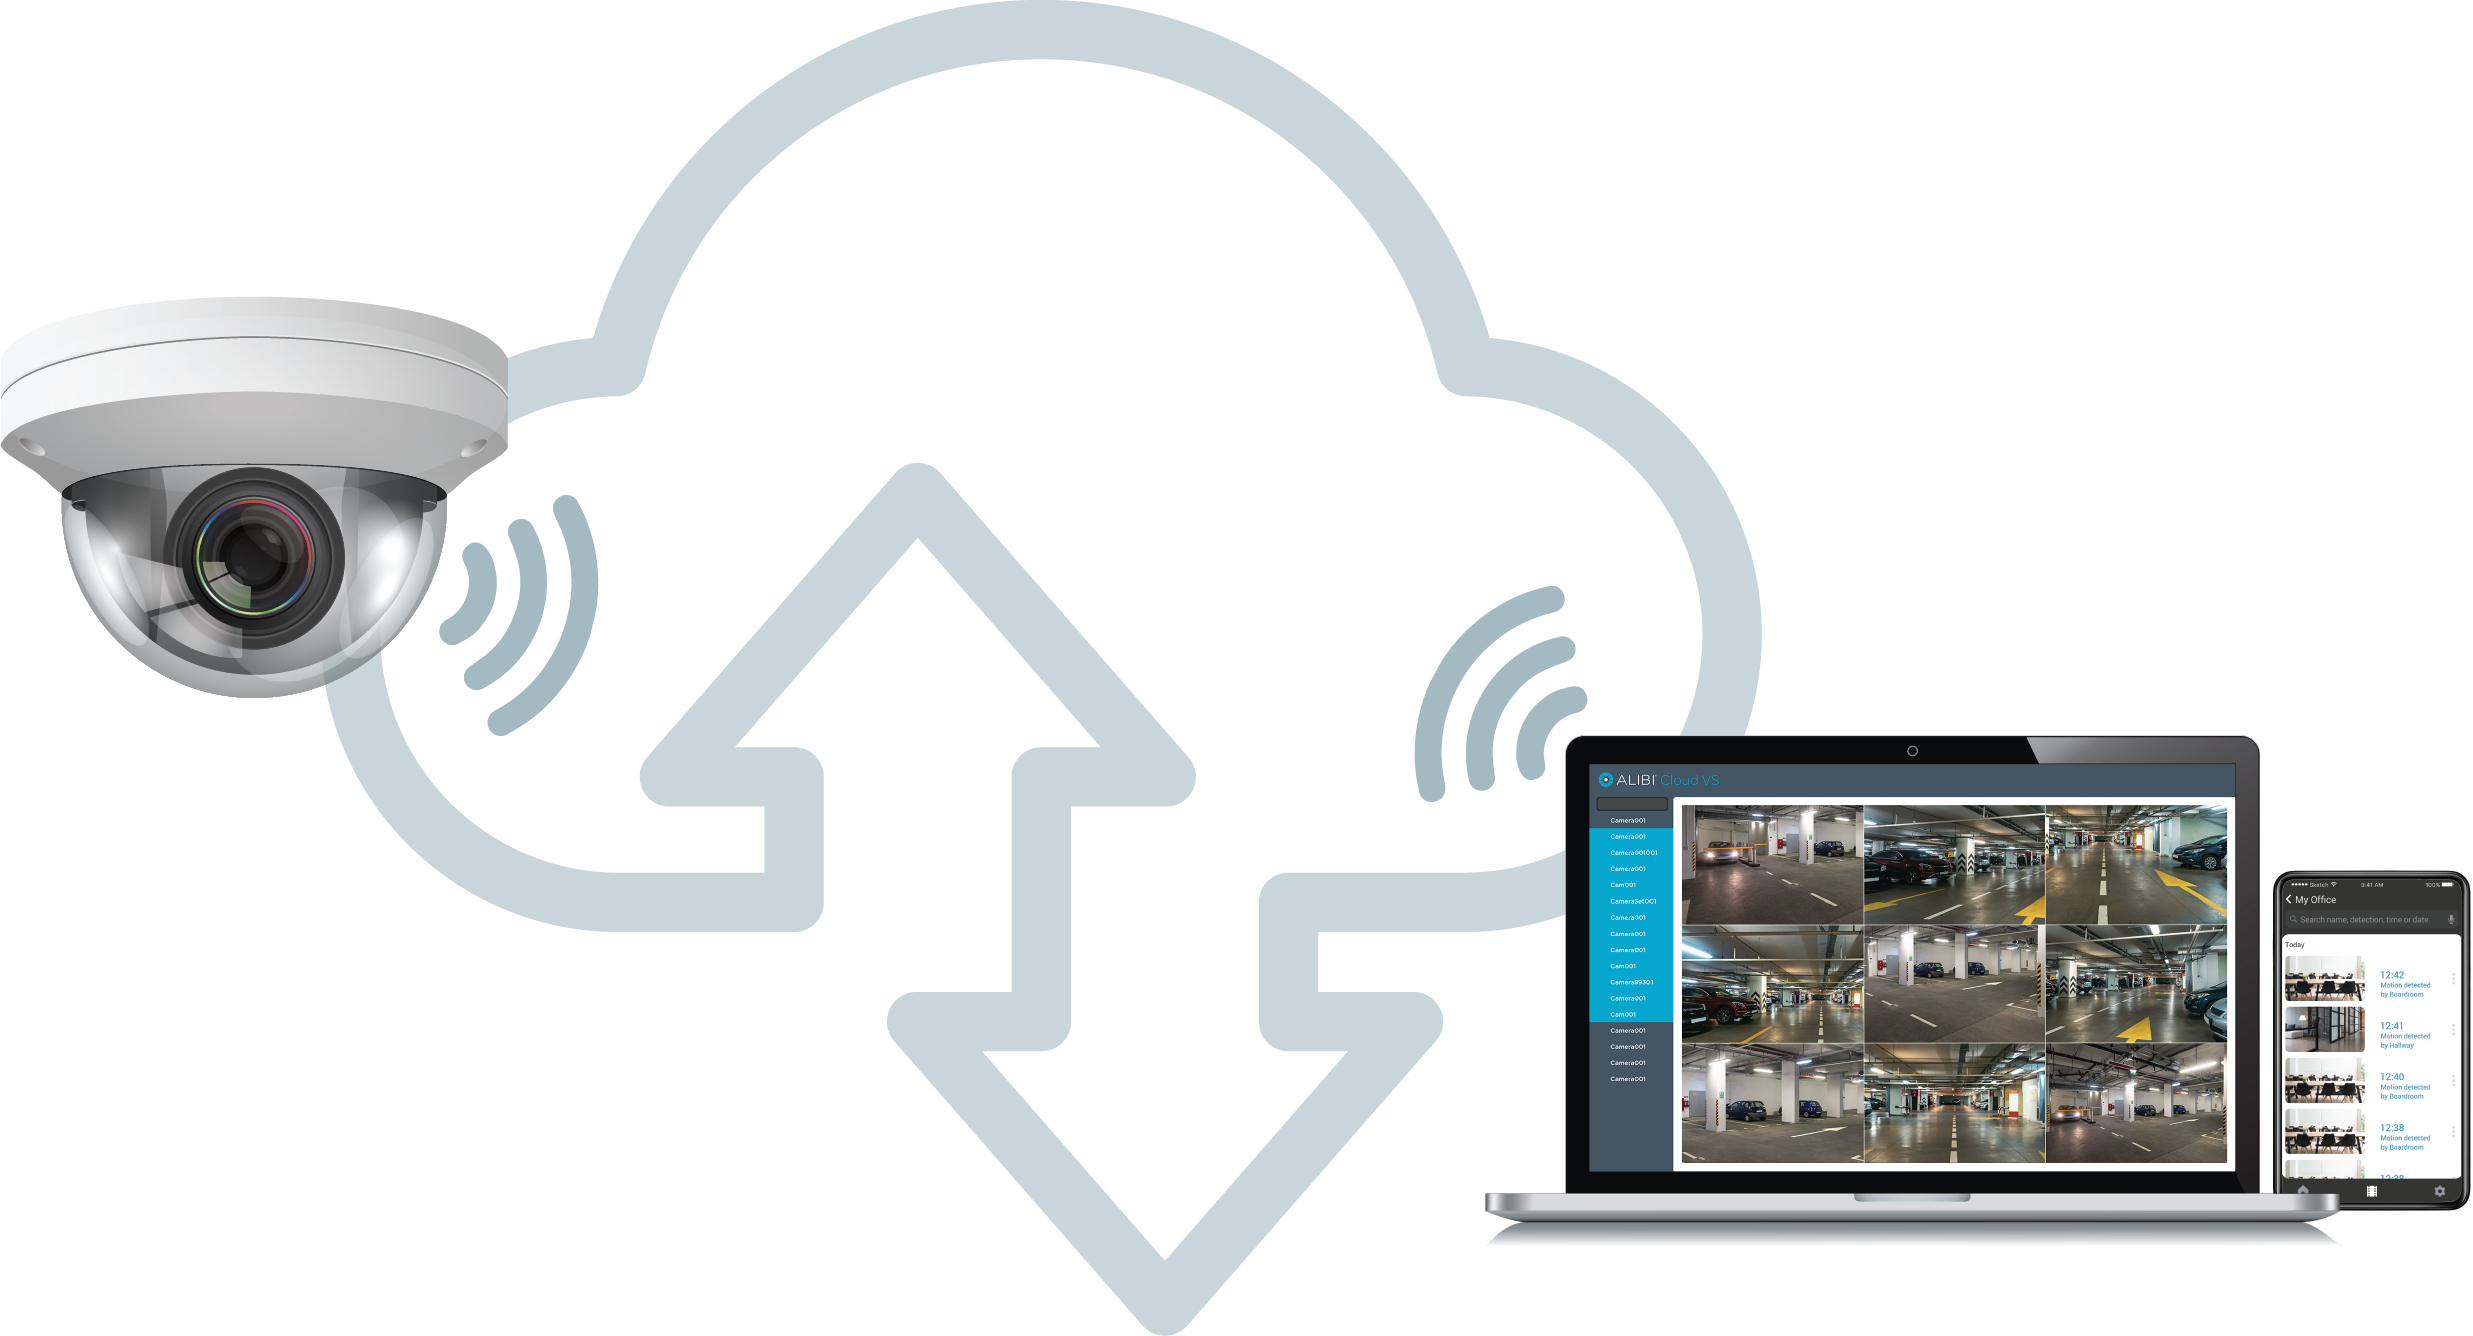 Cloud Video Surveillance